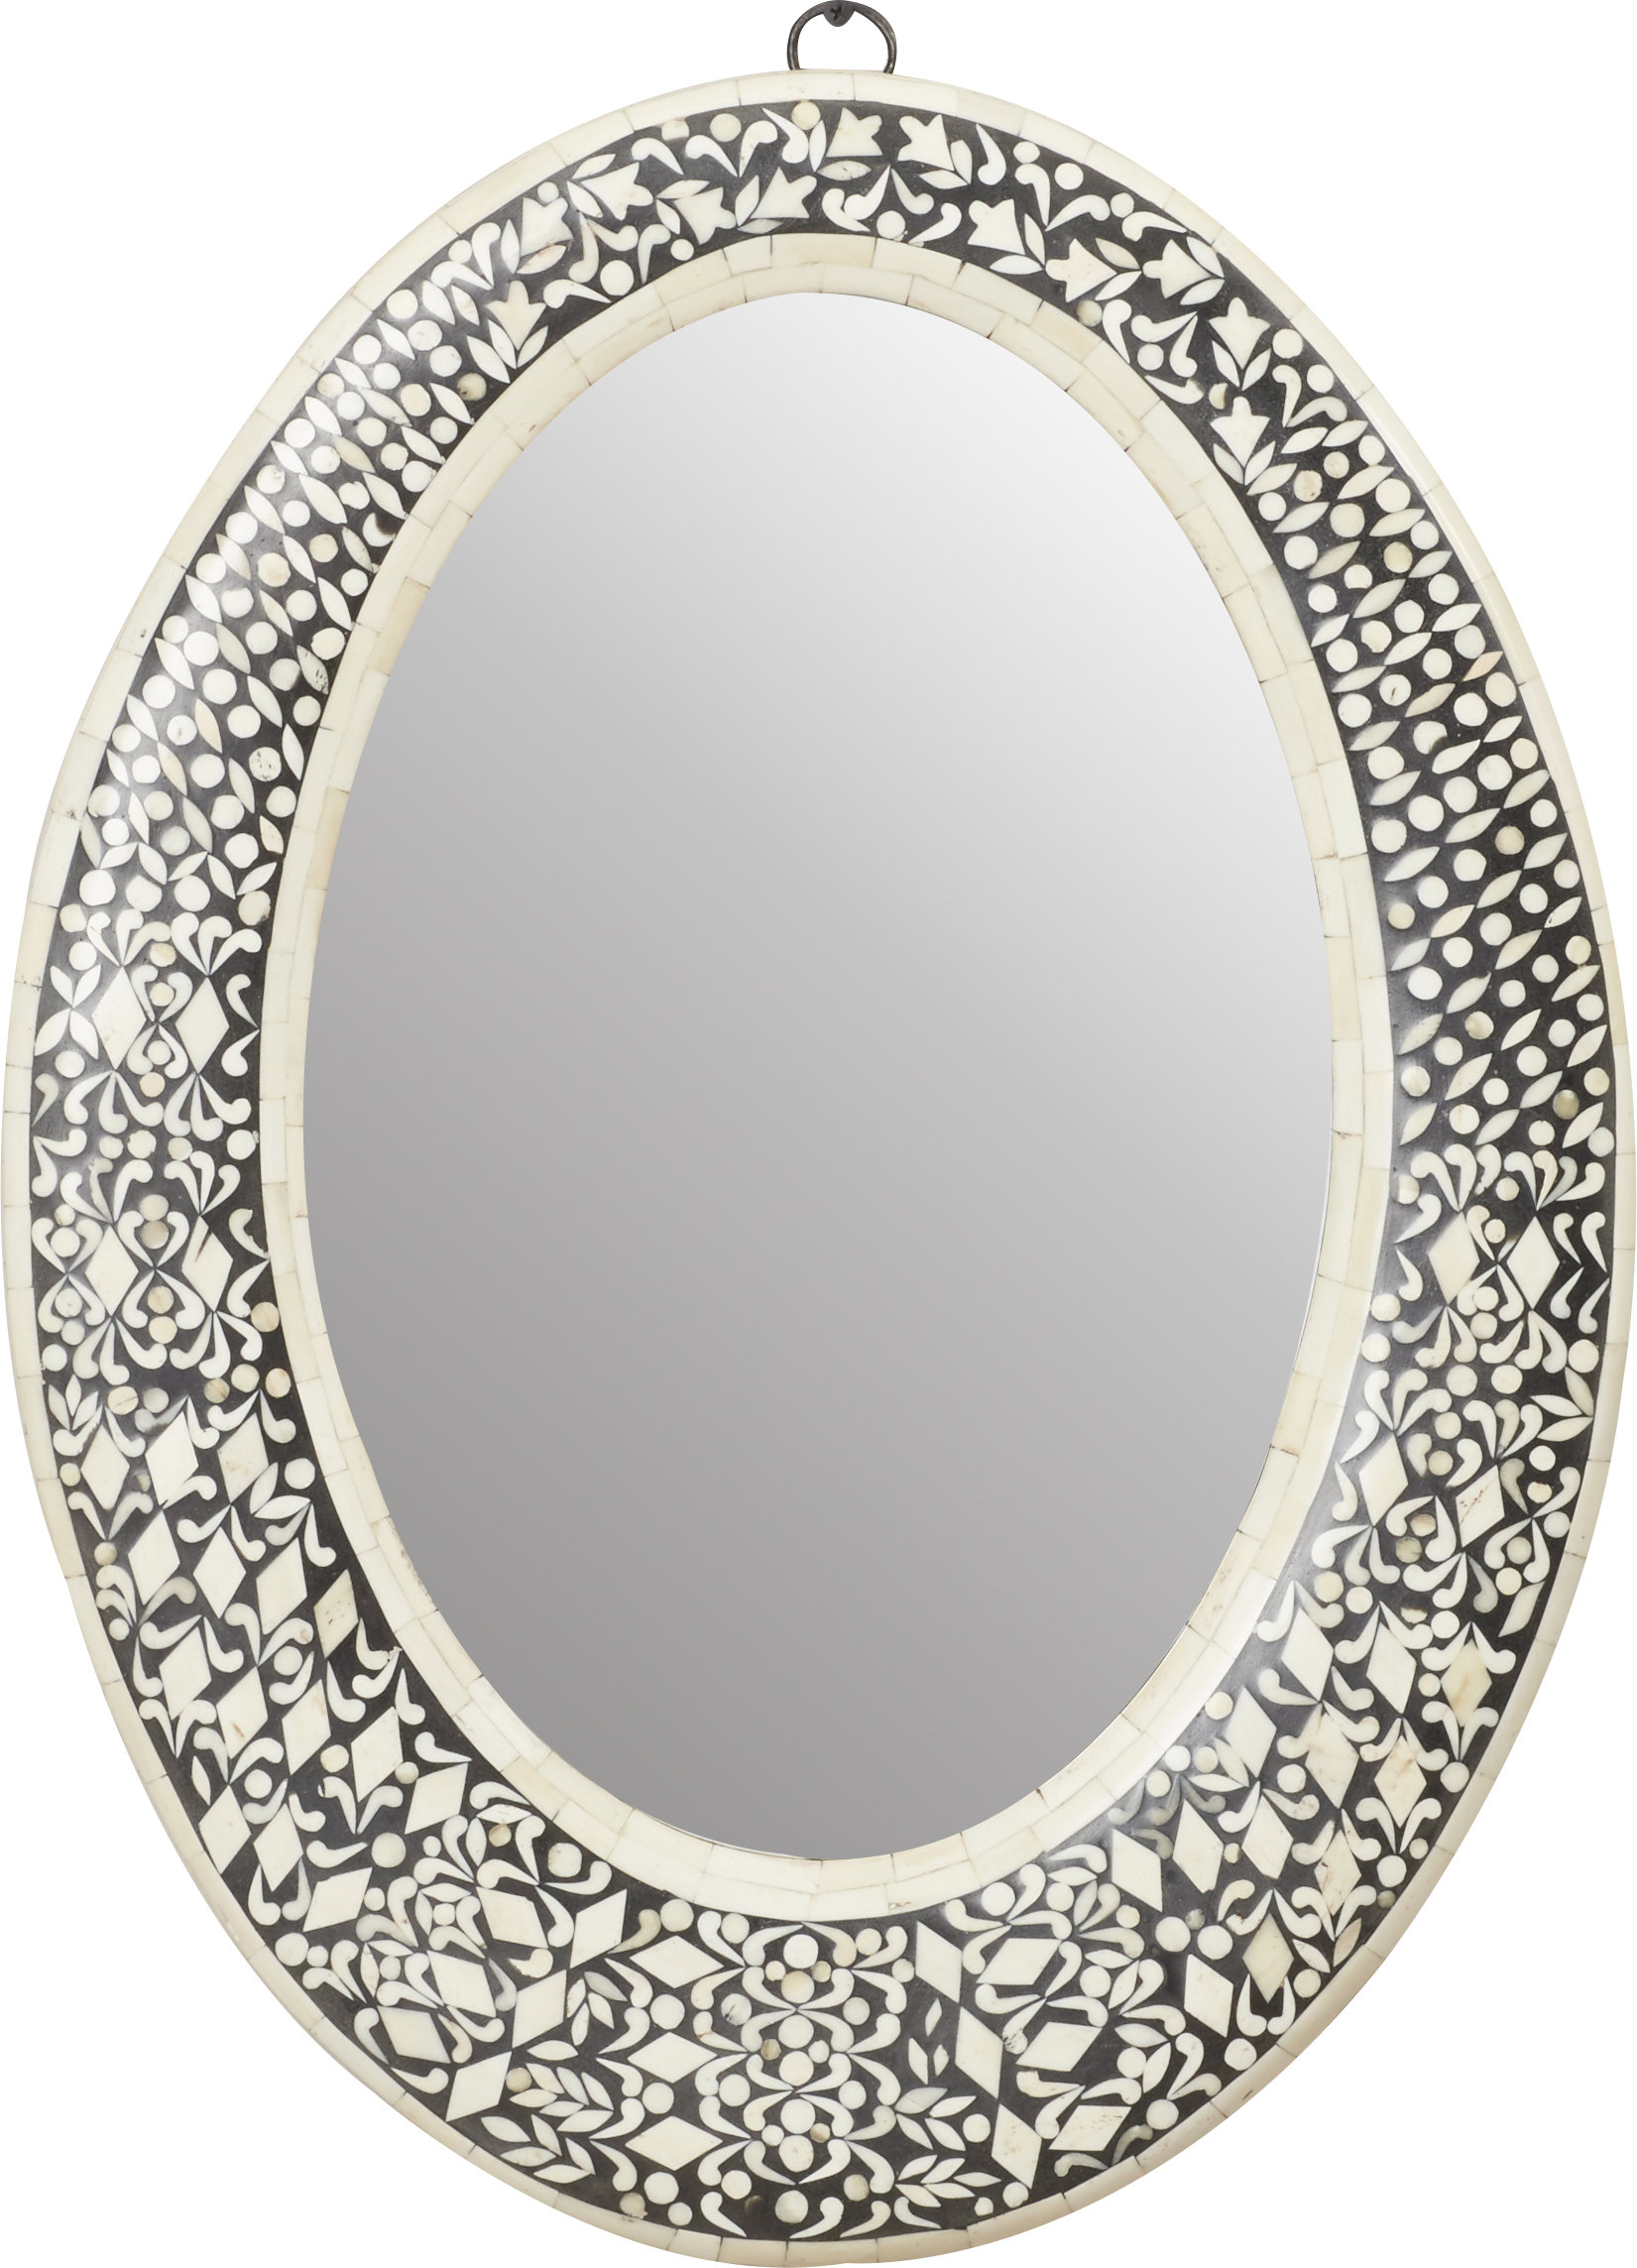 Traditional Oval Wall Mirror Pertaining To Traditional Metal Wall Mirrors (Image 13 of 20)